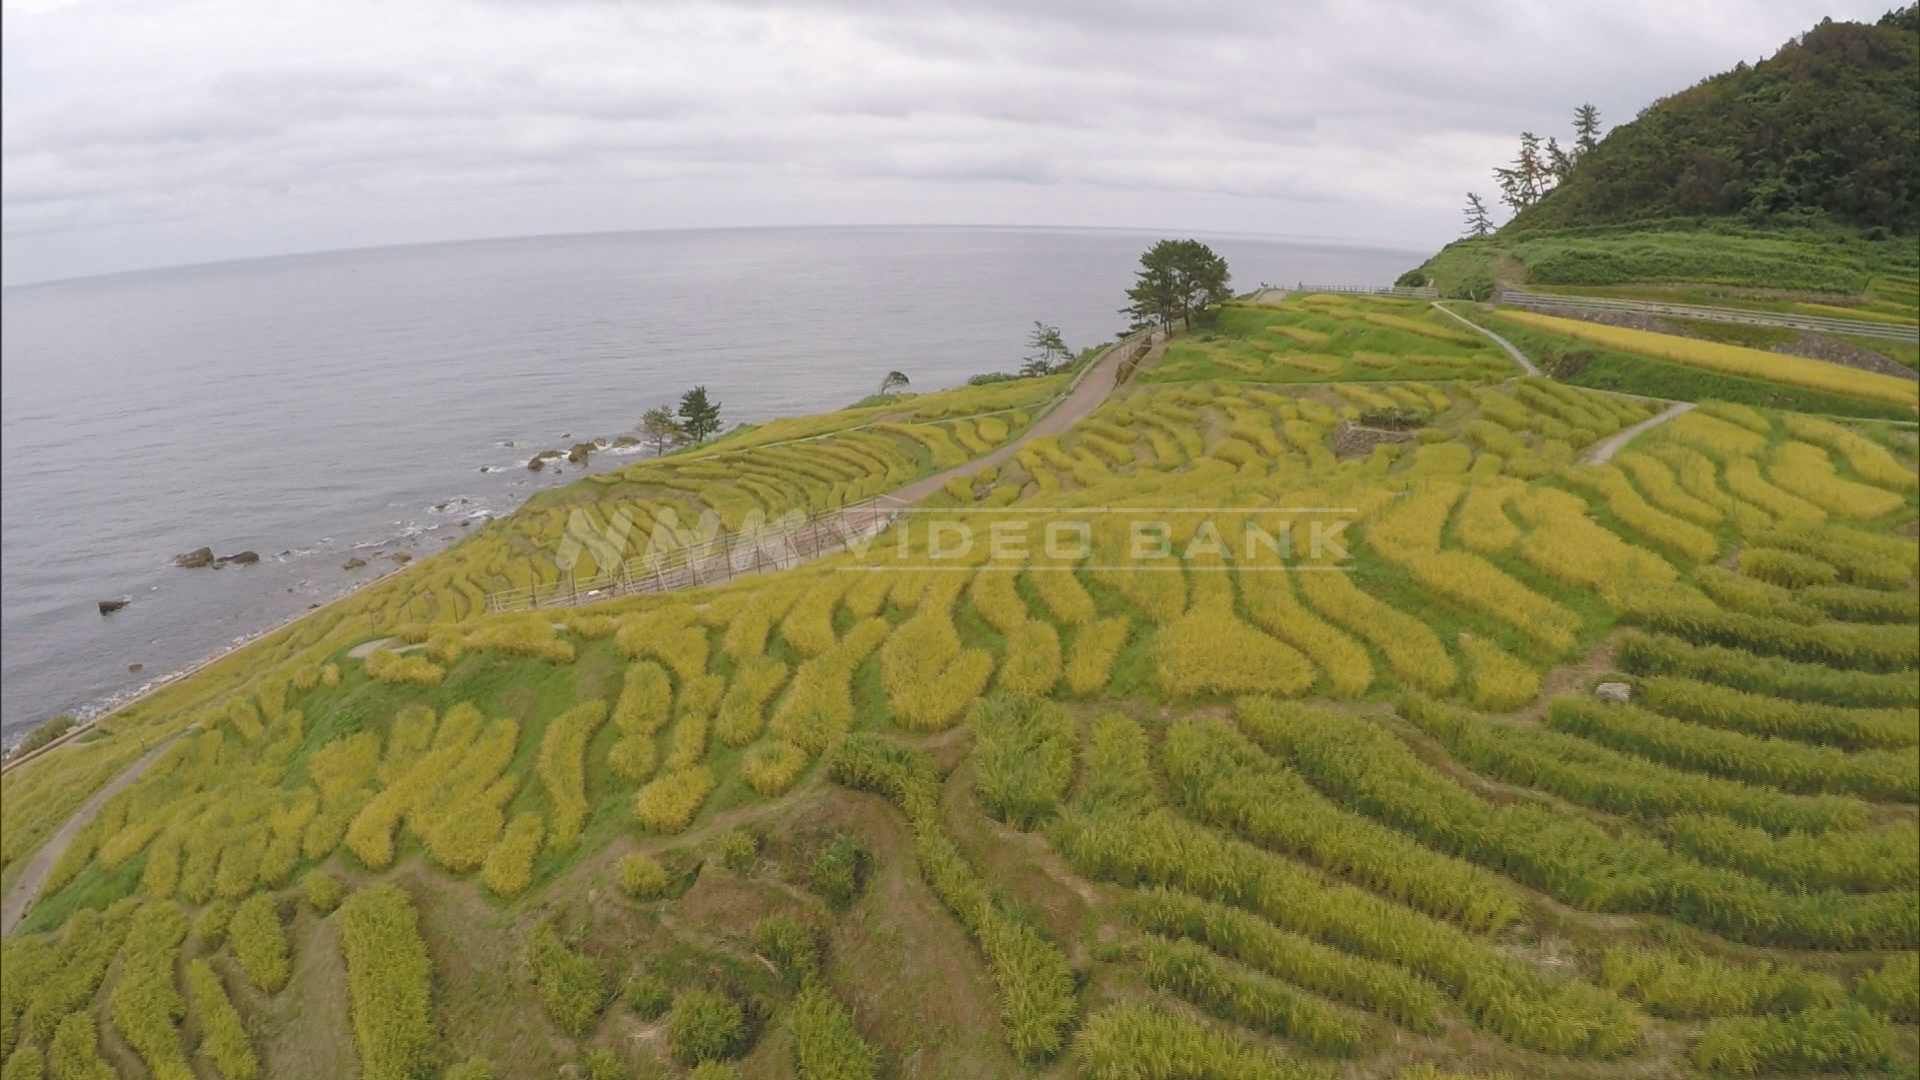 Drone shot: agricultural heritage, Shiroyone terraced rice paddies, Japan